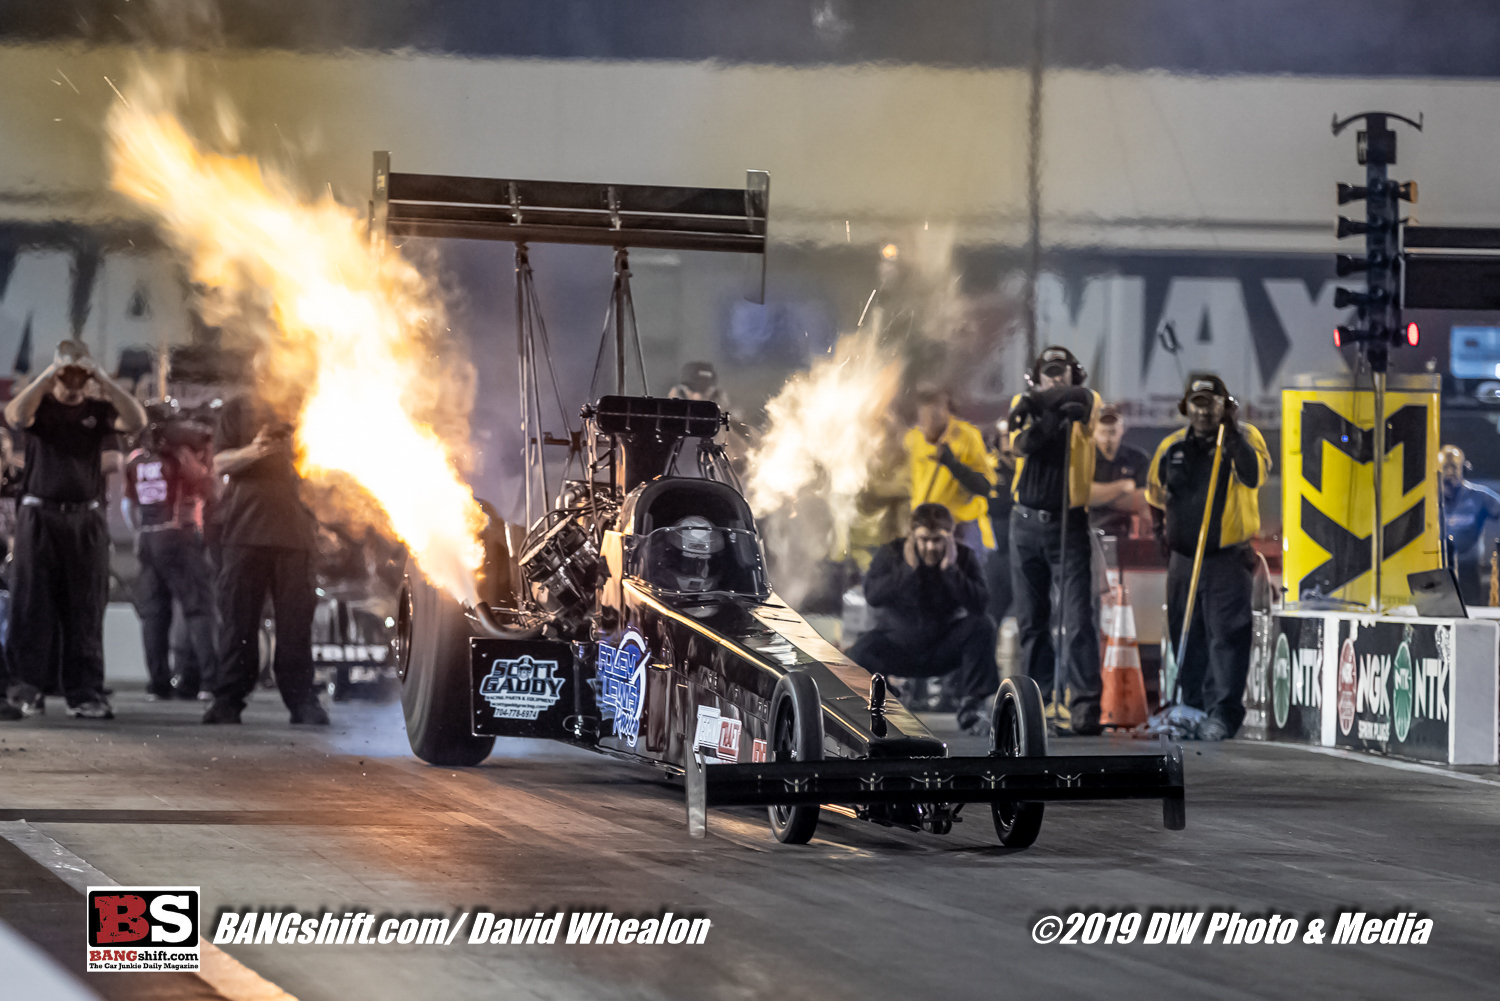 2019 NHRA Carolina Nationals Action Photos: The NHRA Season Is Almost Over, The Action Is Still Red Hot!